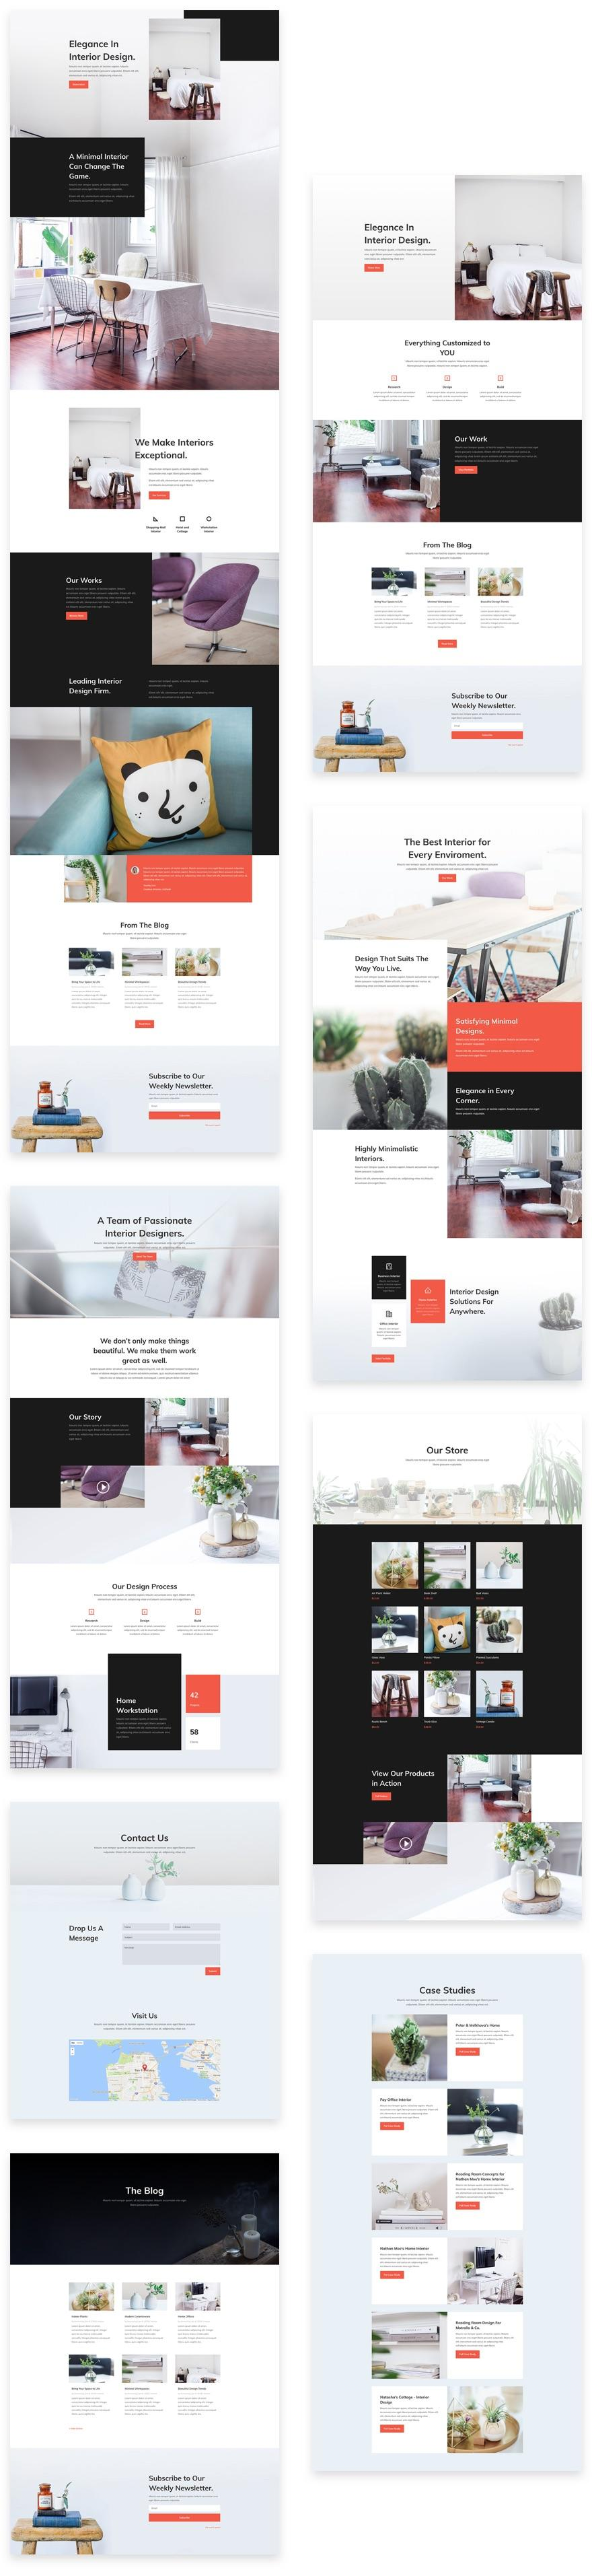 Download a Free & Refreshing Interior Design Layout Pack for